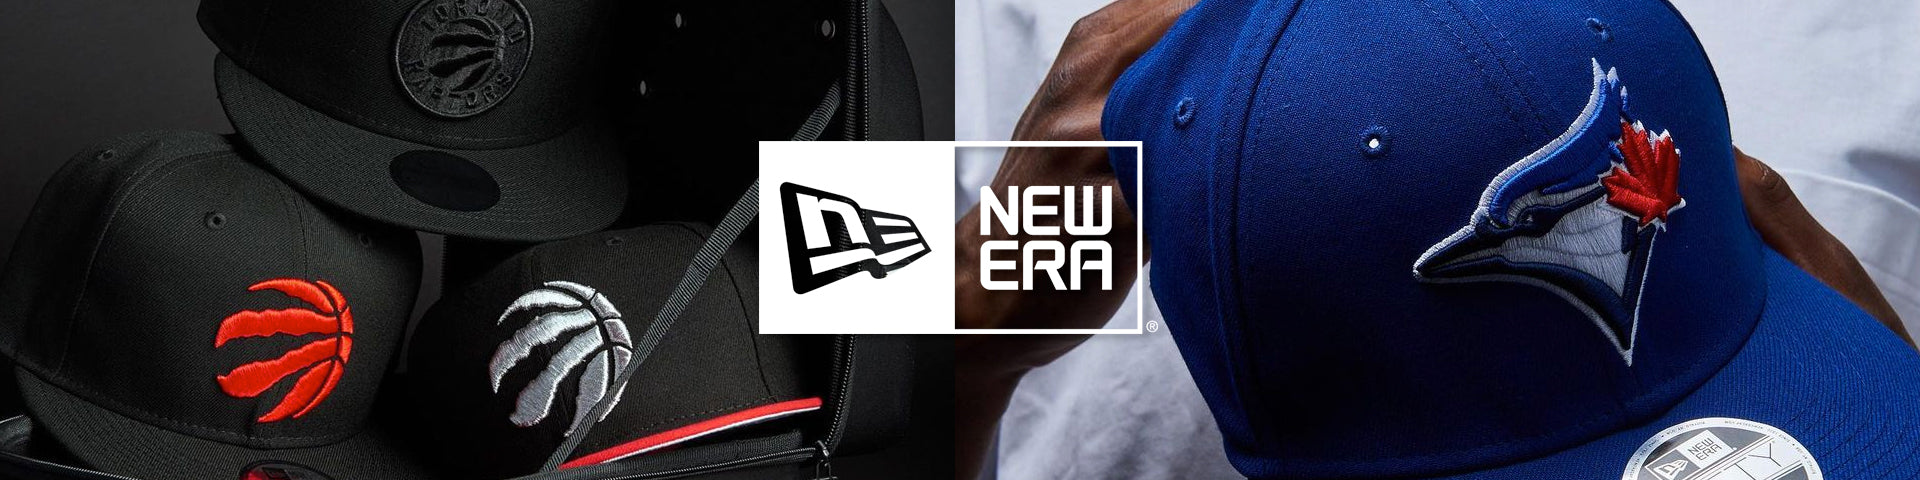 SVP Sports - New Era Collection Banner